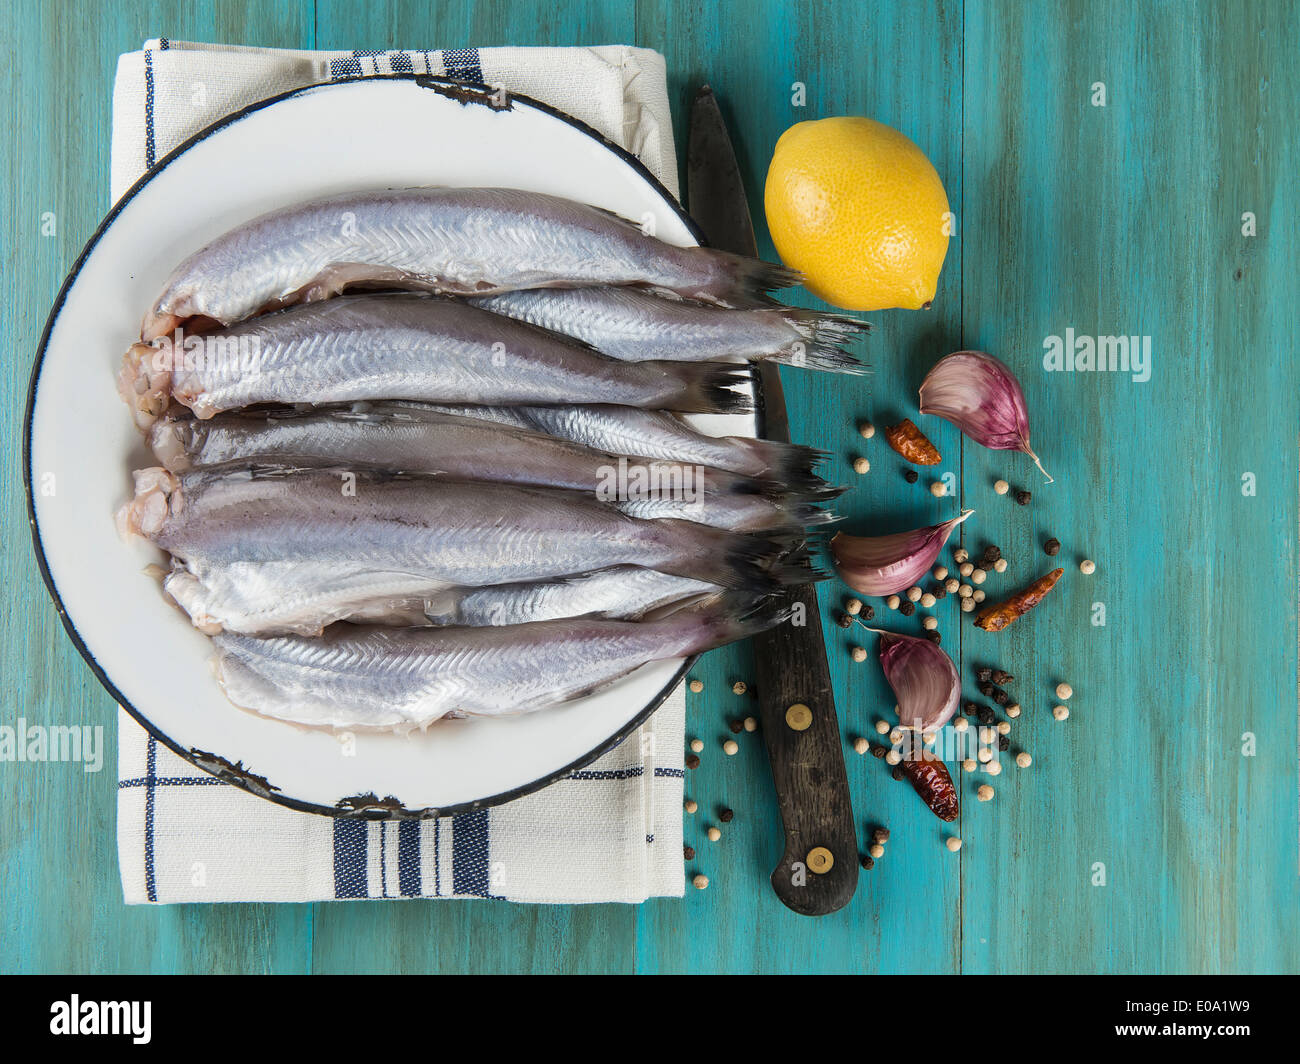 How to cook blue whiting